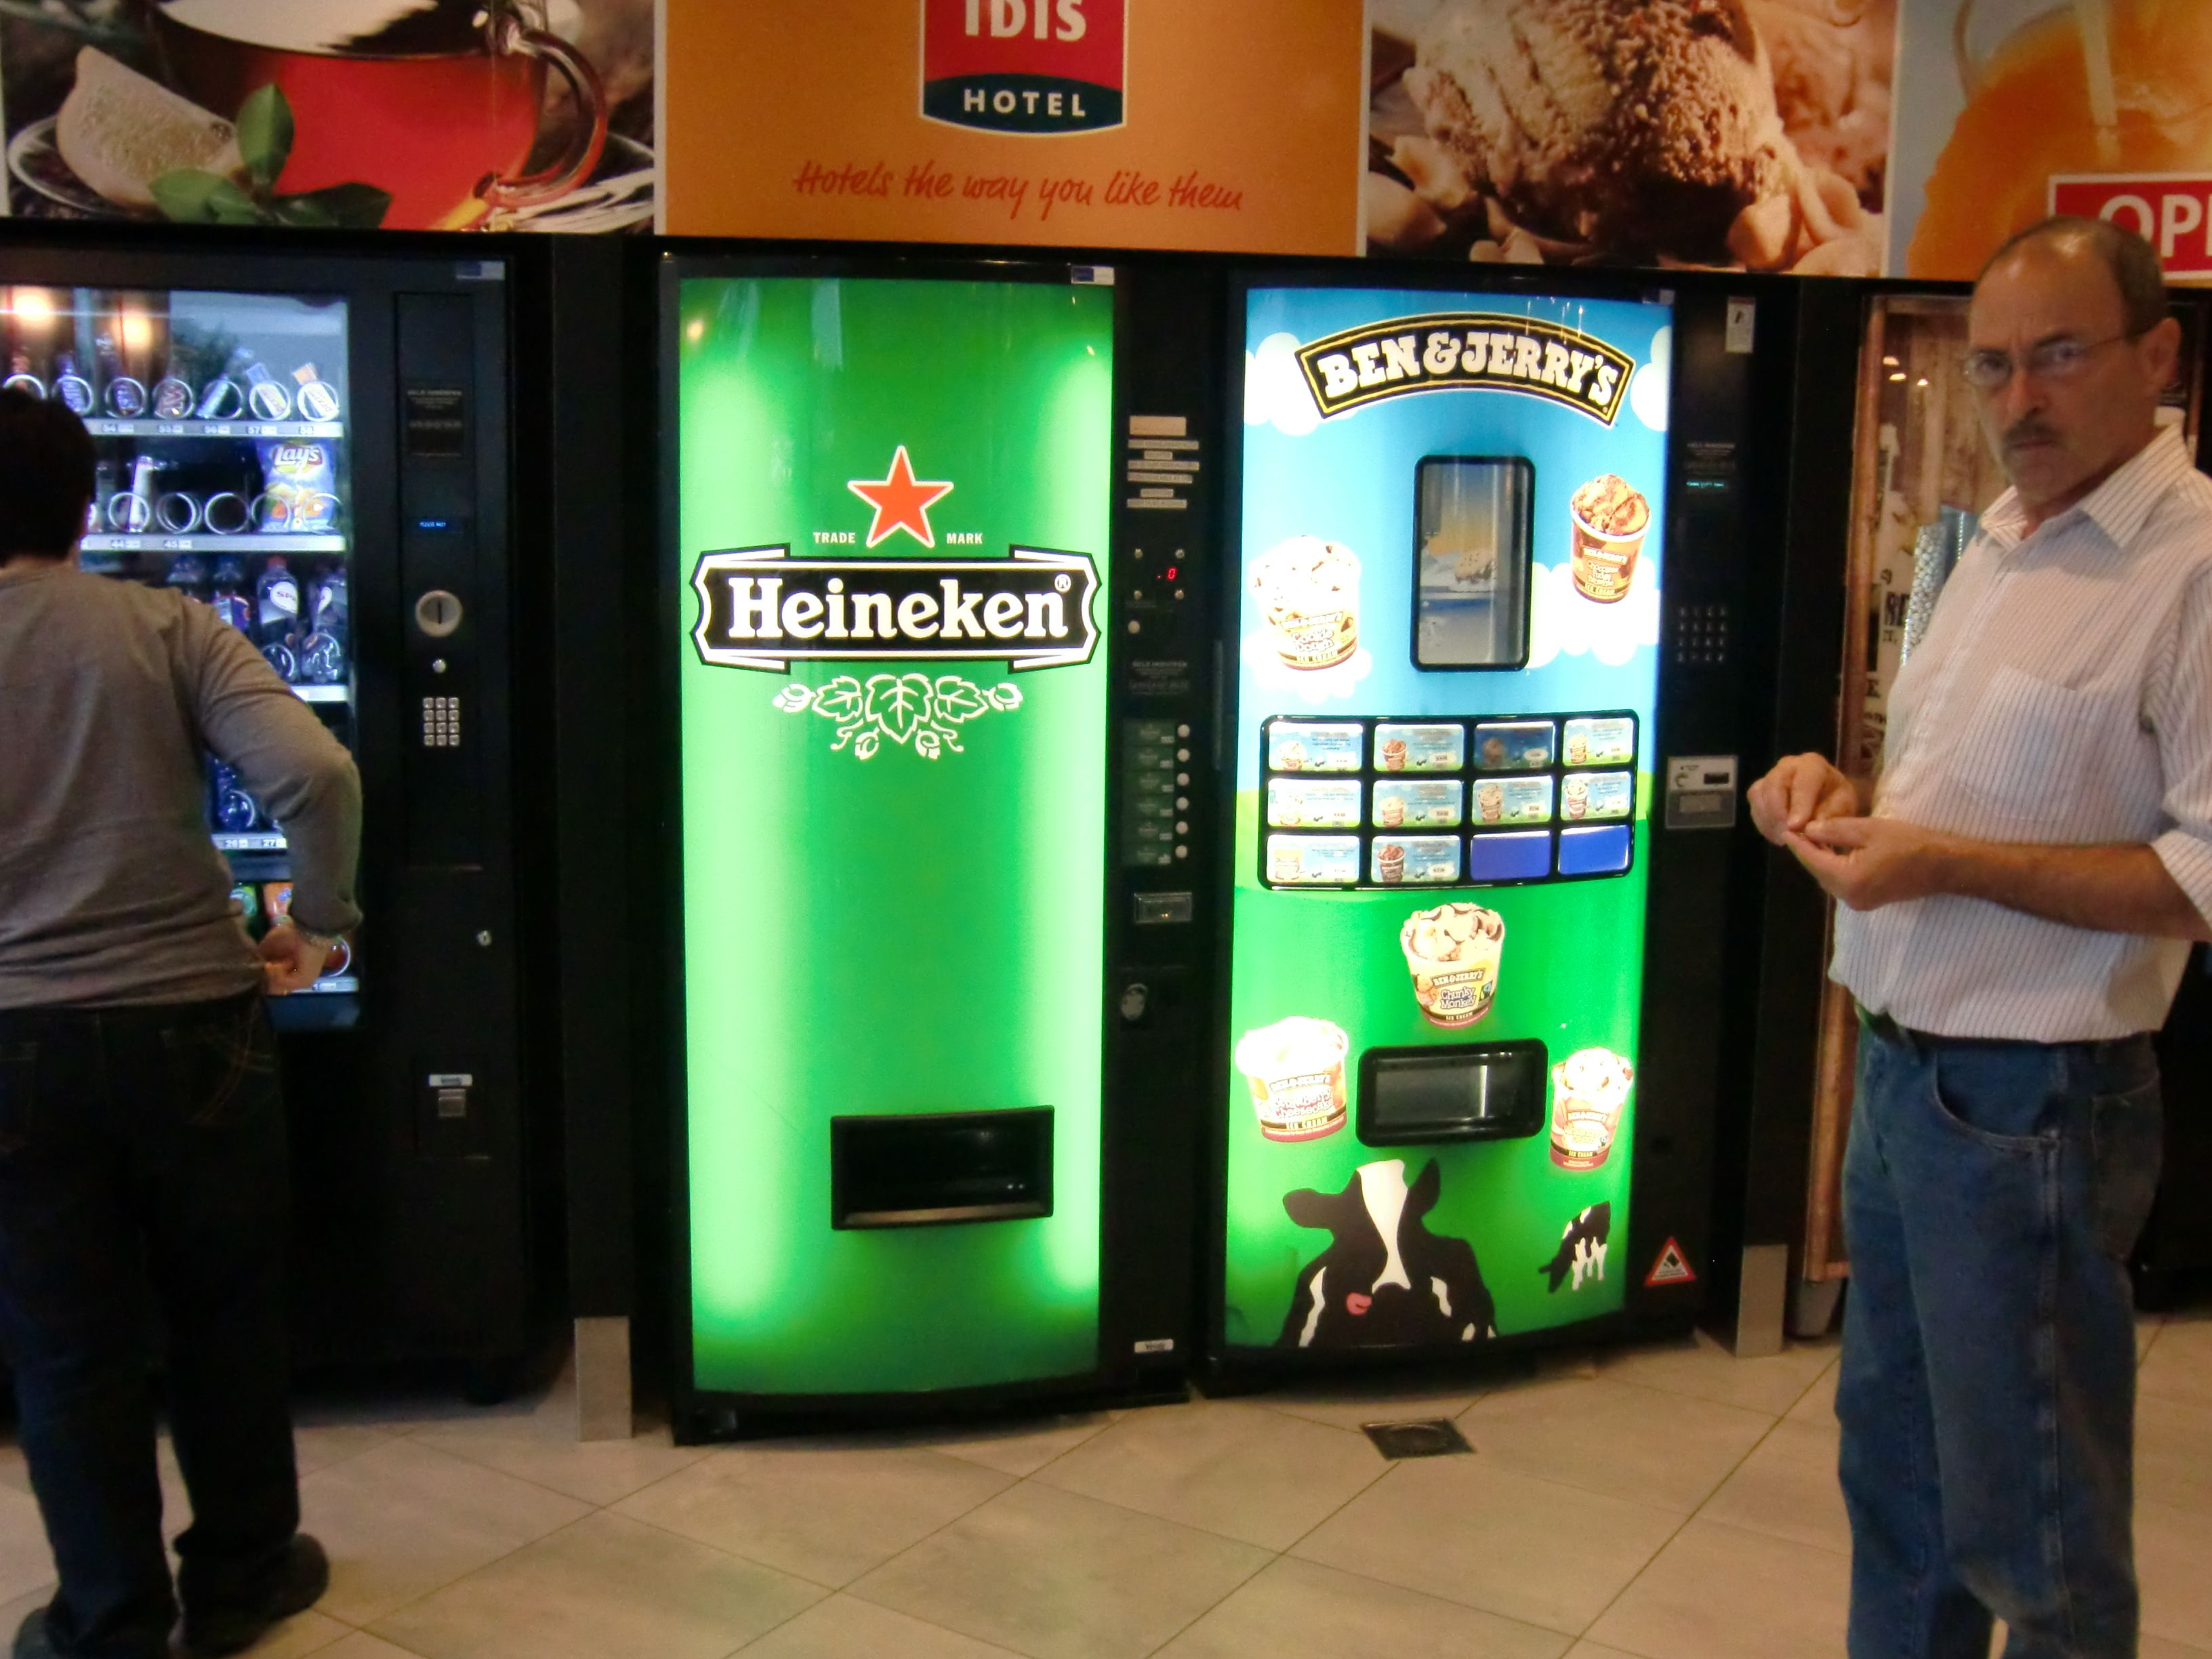 Man Cave Vending Machine : Only in amsterdam beer vending machines hotel lobby